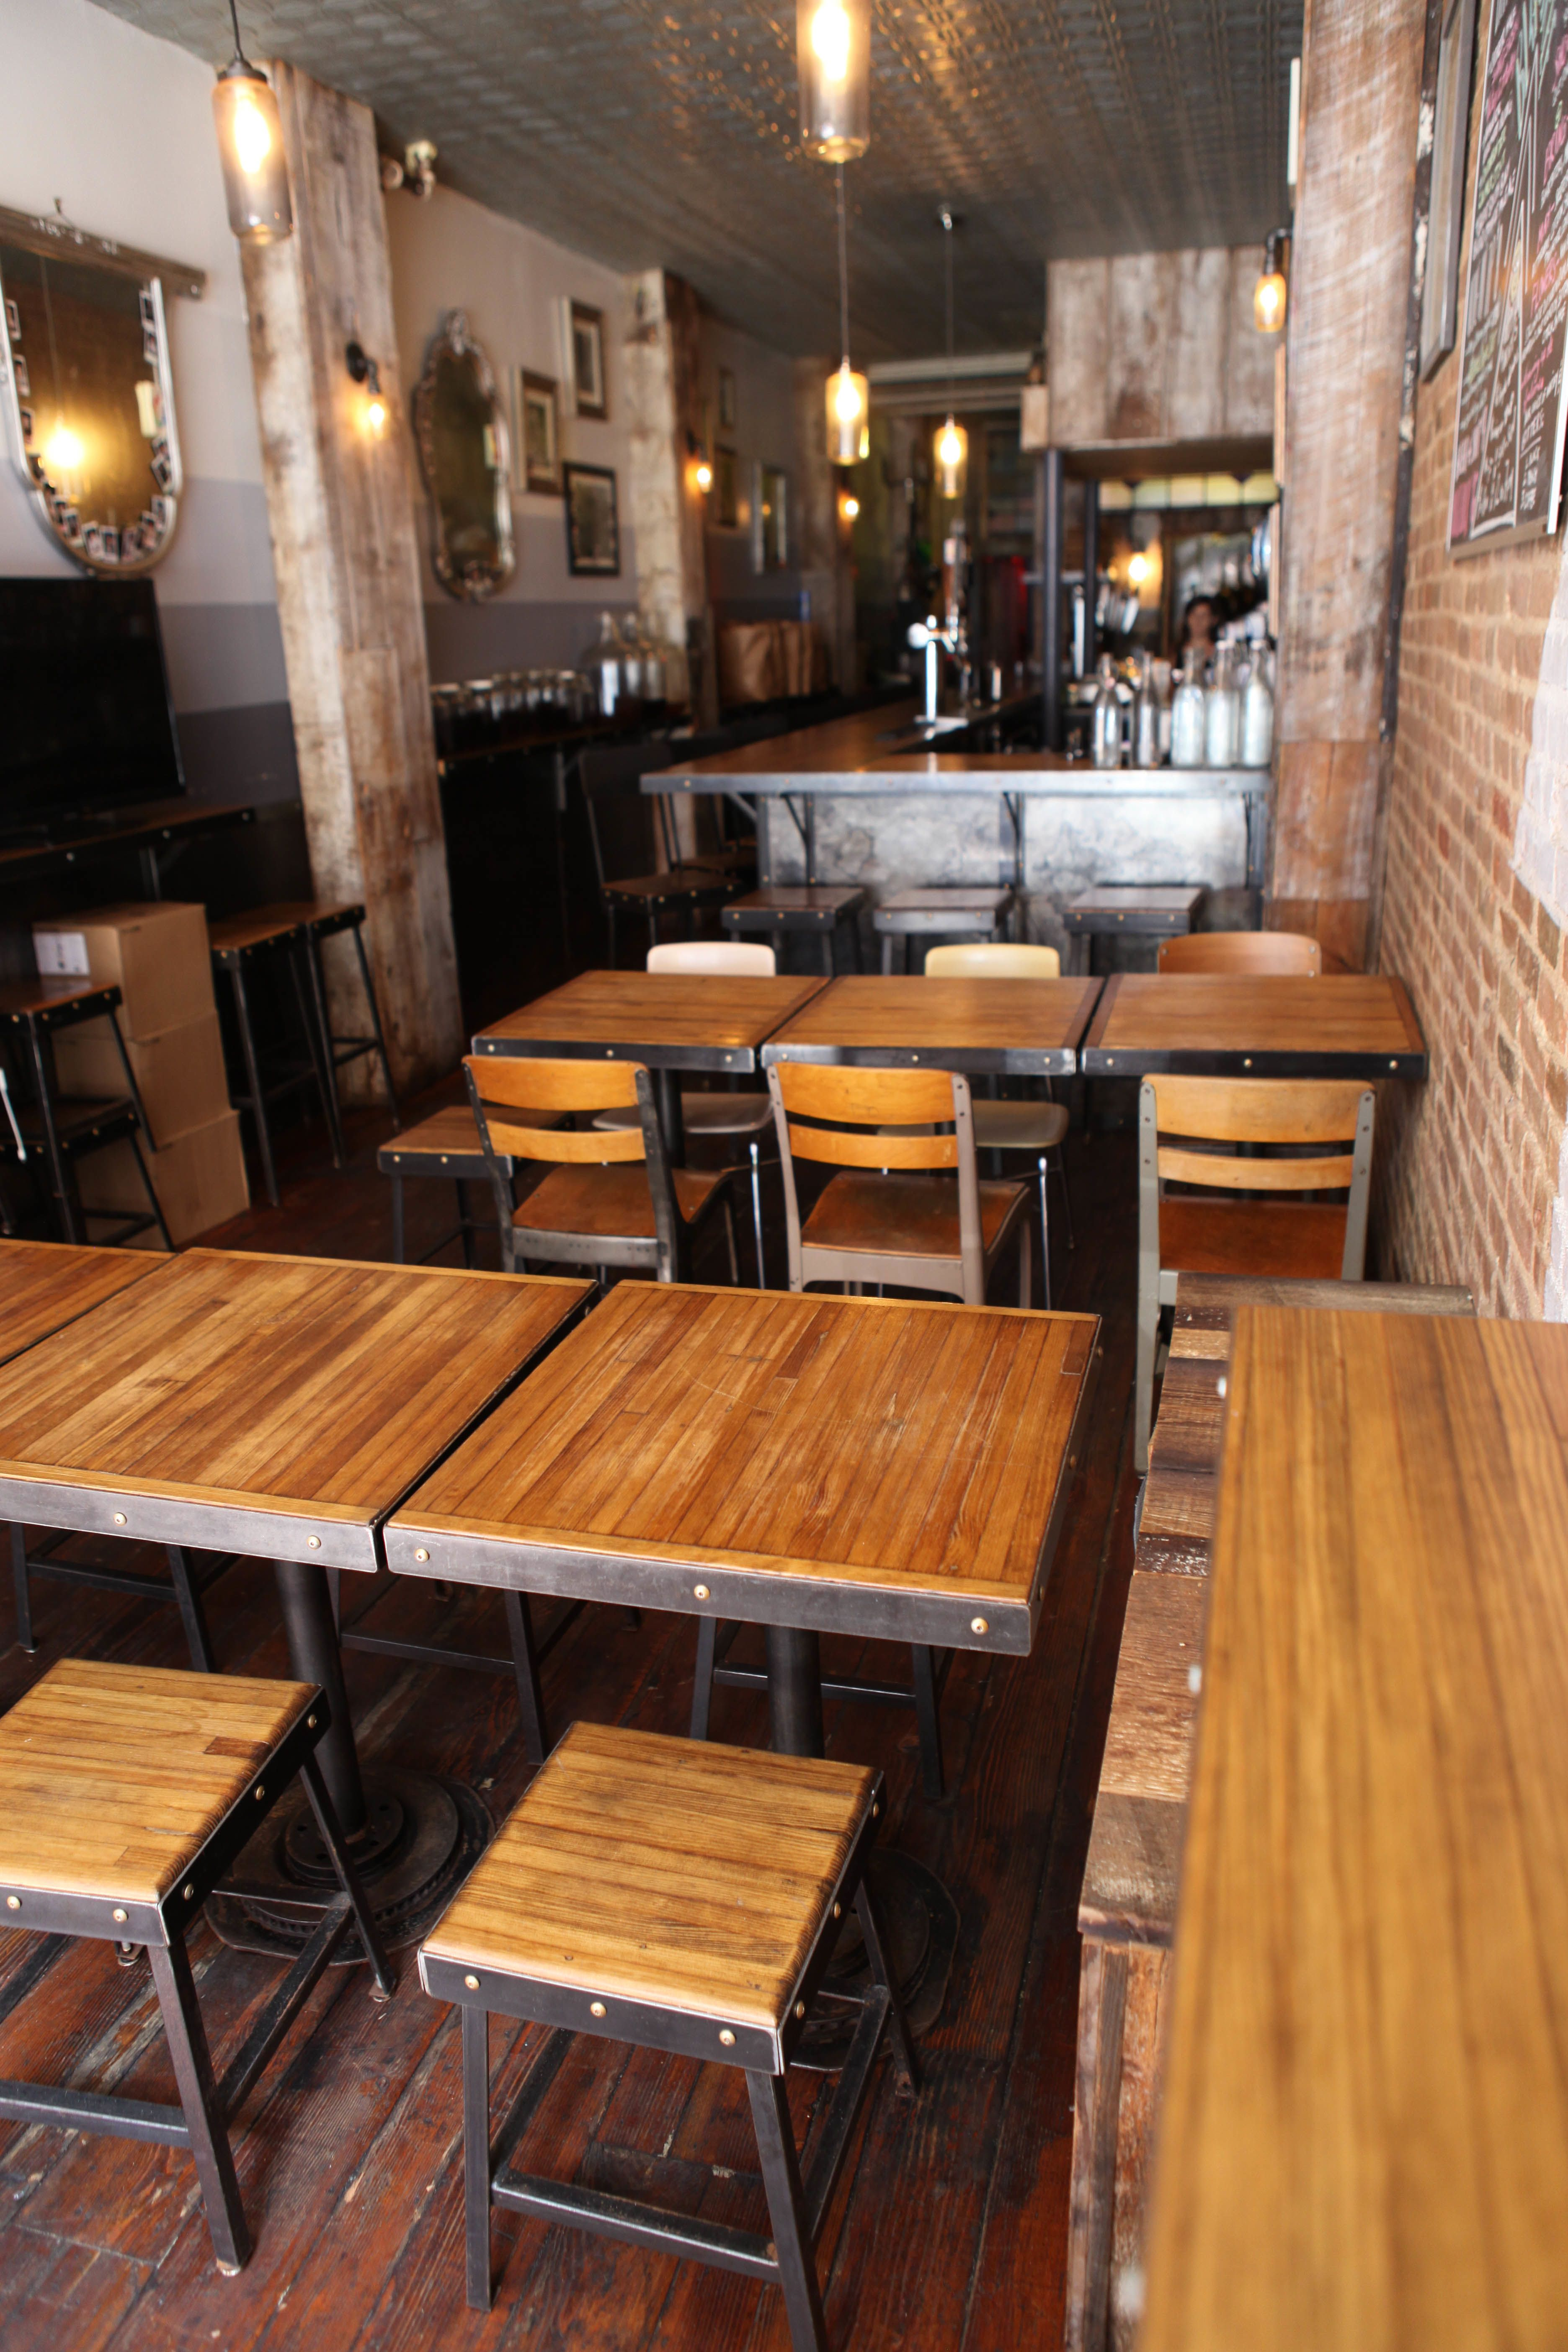 Bar, stools, tables and chairs at Black Tree restaurant ...